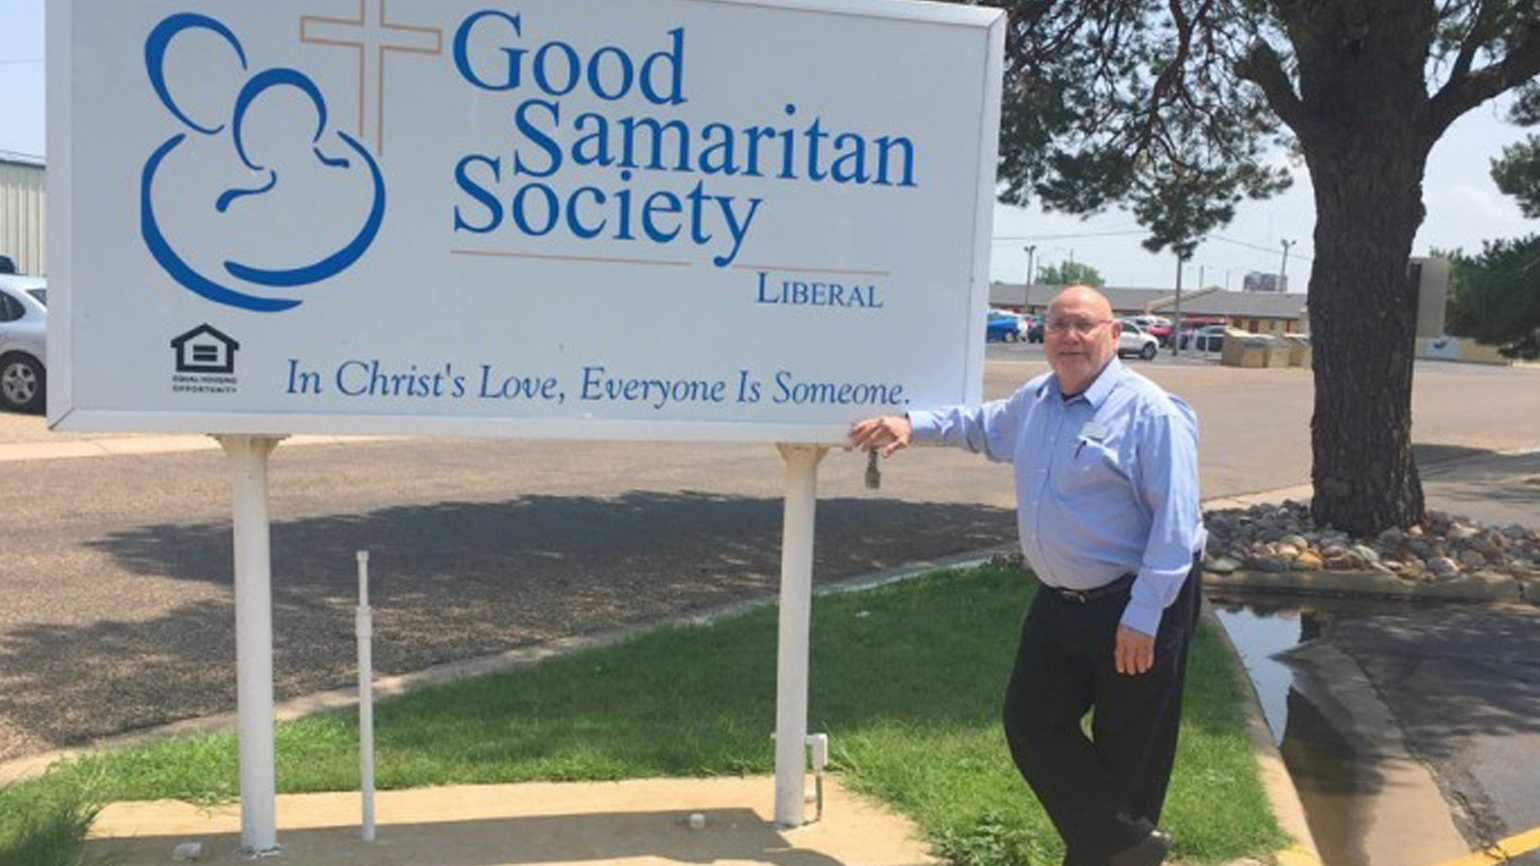 Richard Parra went from a certified nursing assistant to administrator after he found his calling in healthcare.